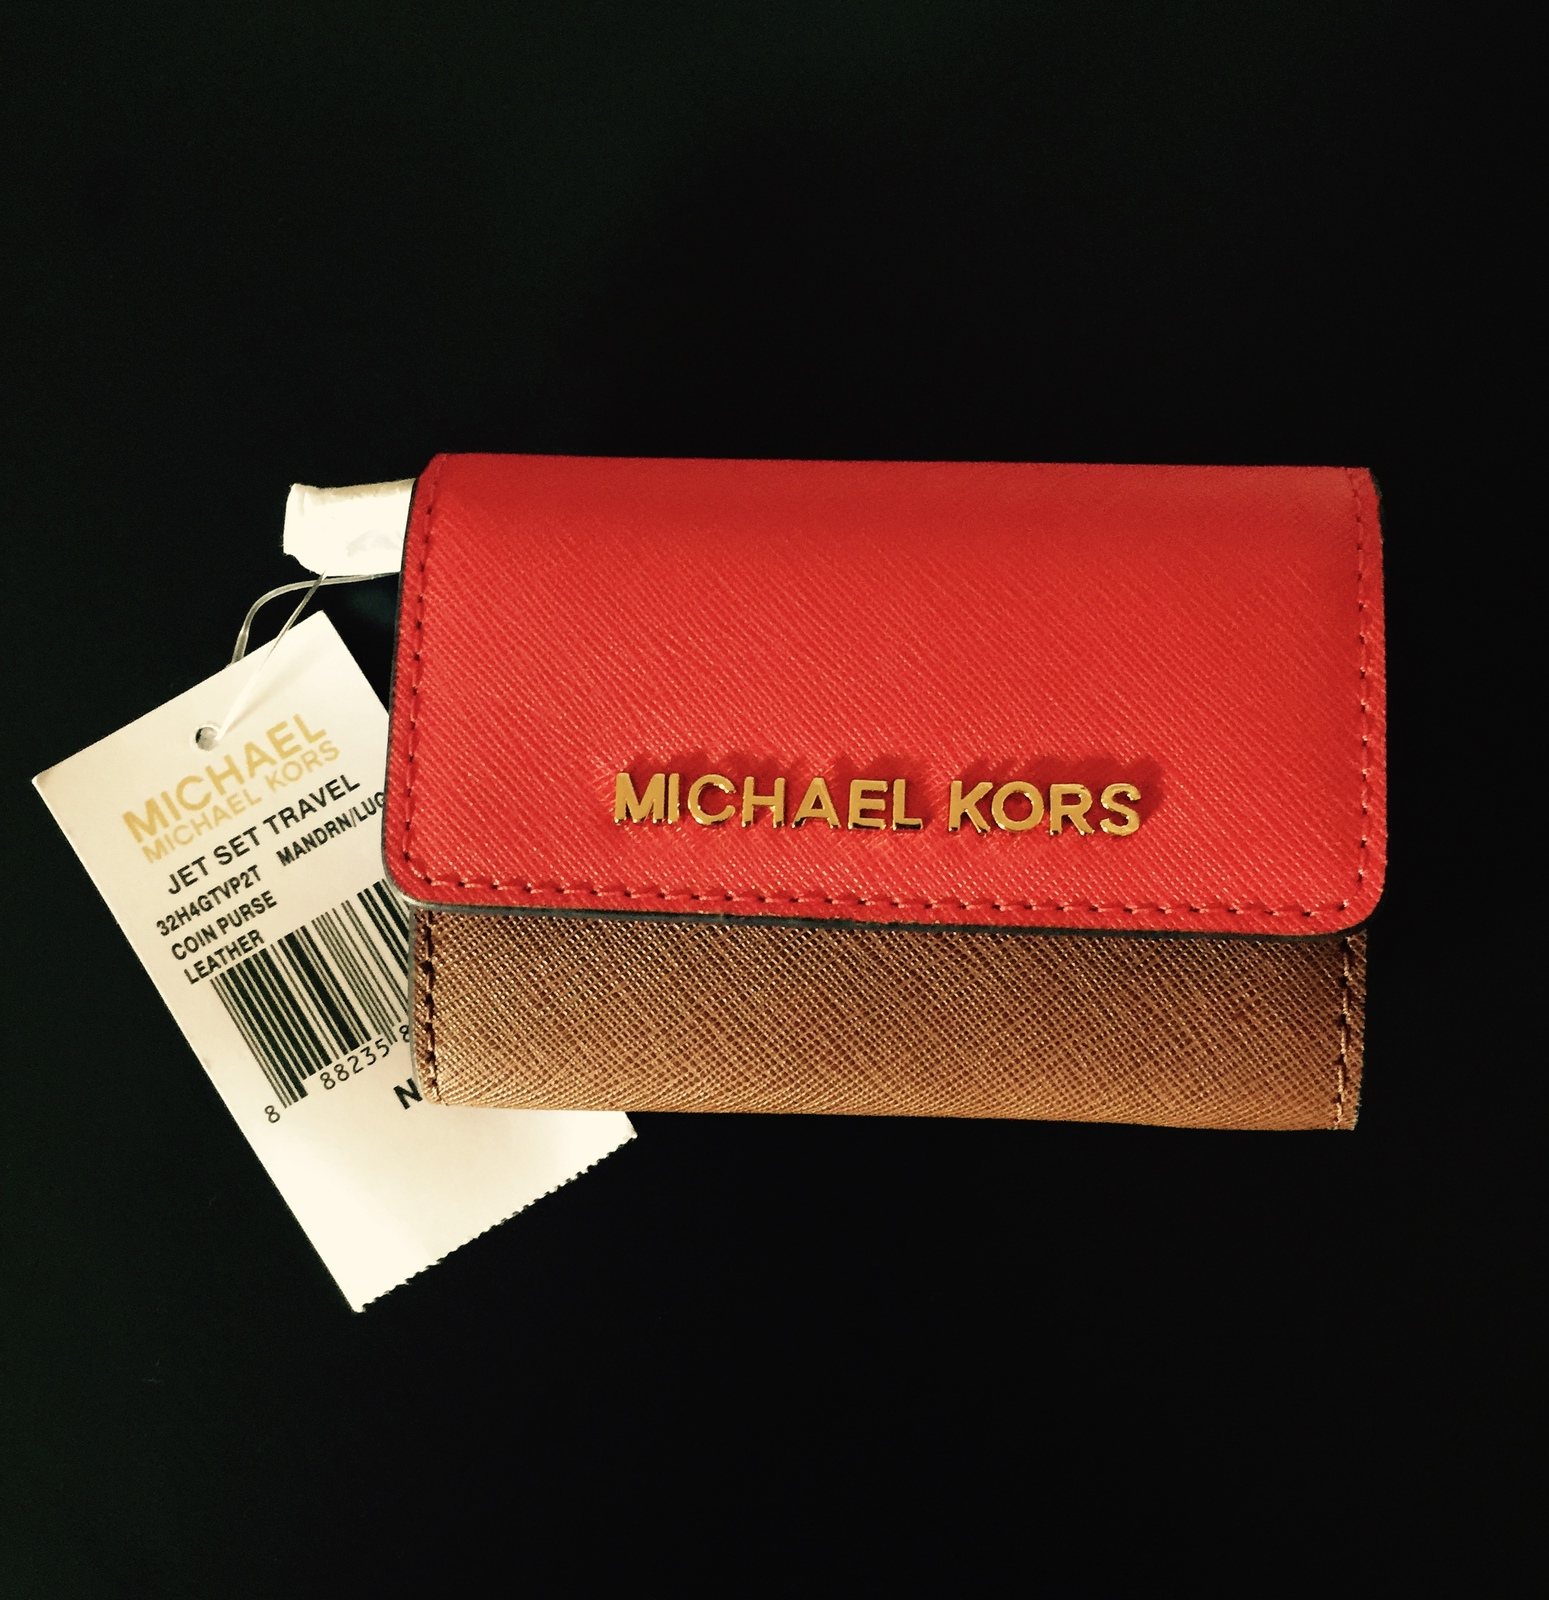 eb86ac187c1d Buy michael kors coin purse uk > OFF58% Discounted